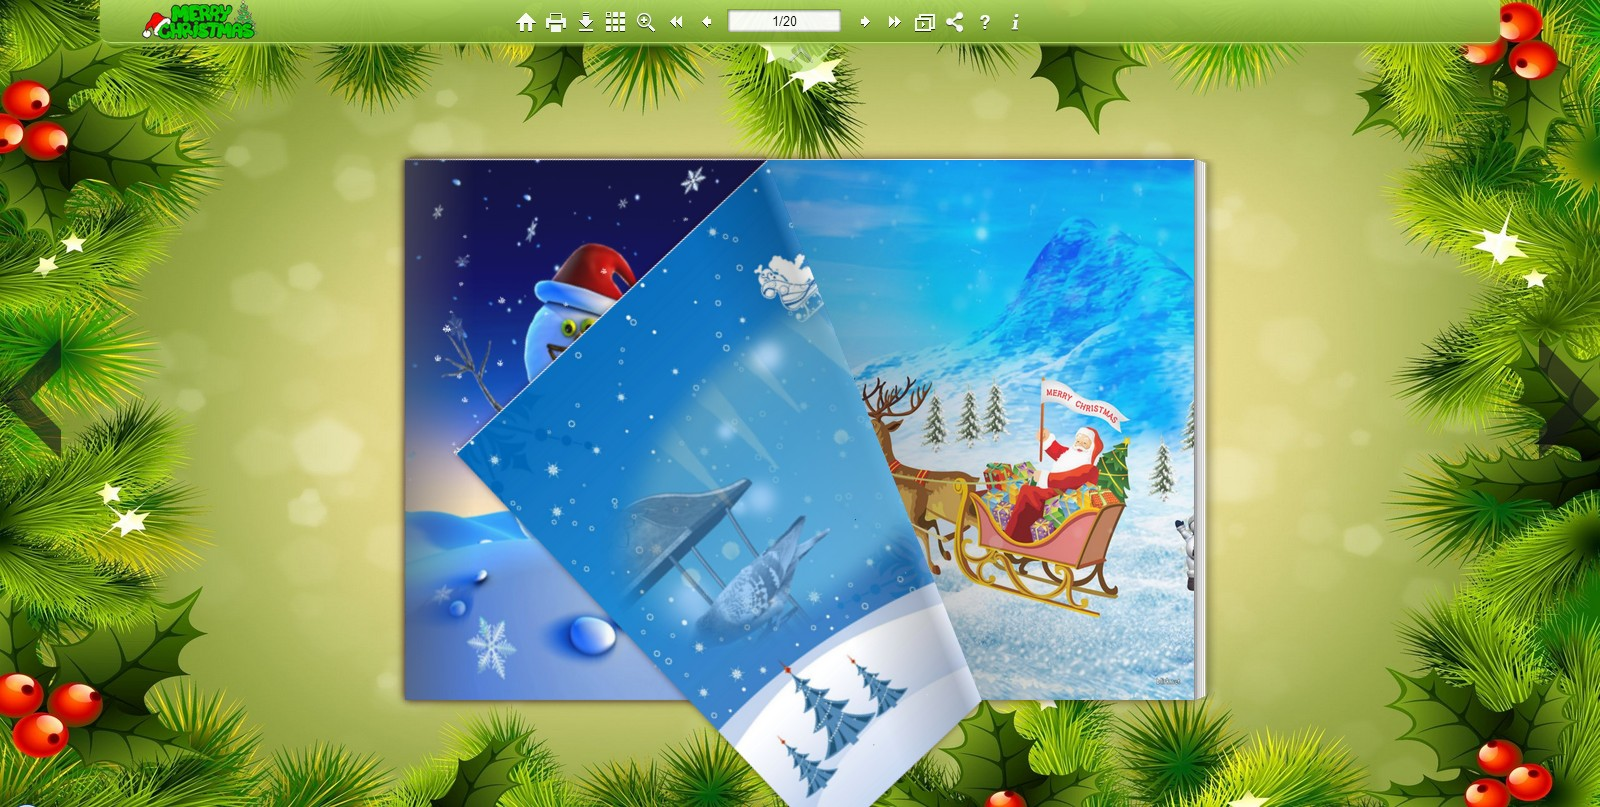 Page flip brochures in Christmas theme